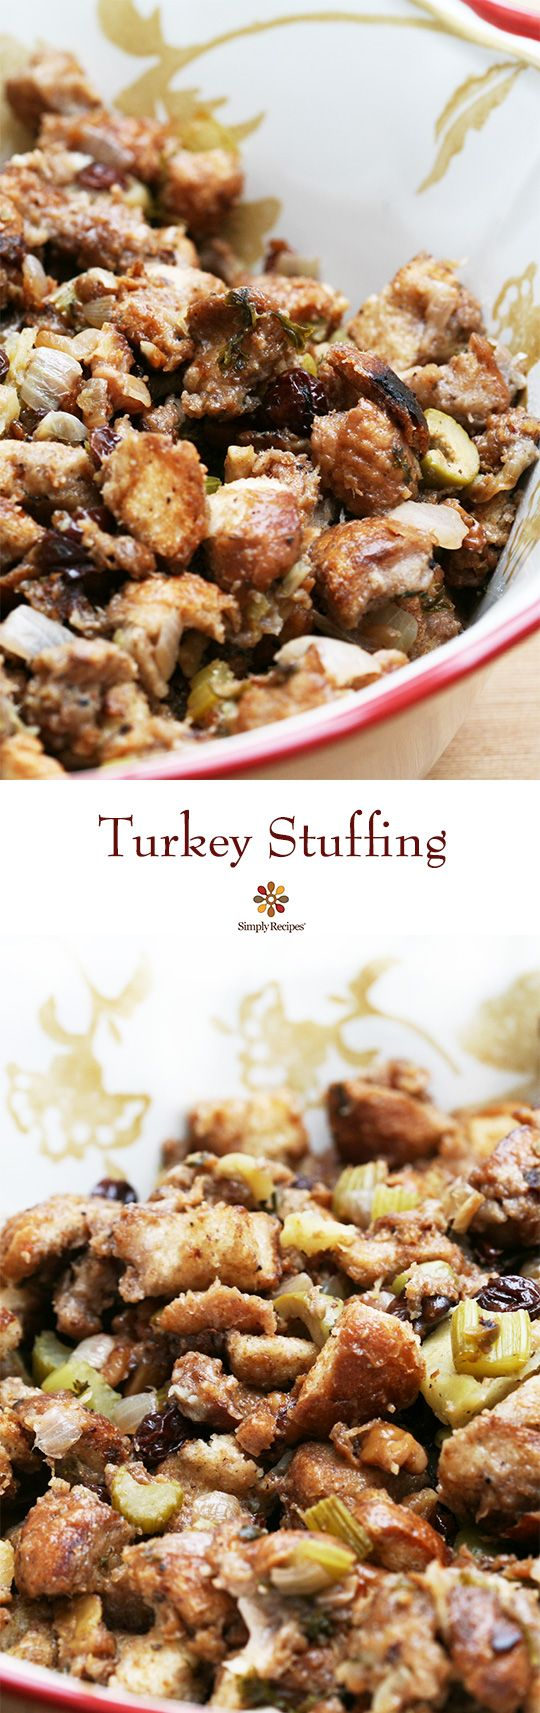 Mom's Turkey Stuffing | Recipe | Turkey Stuffing, Turkey Stuffing ...